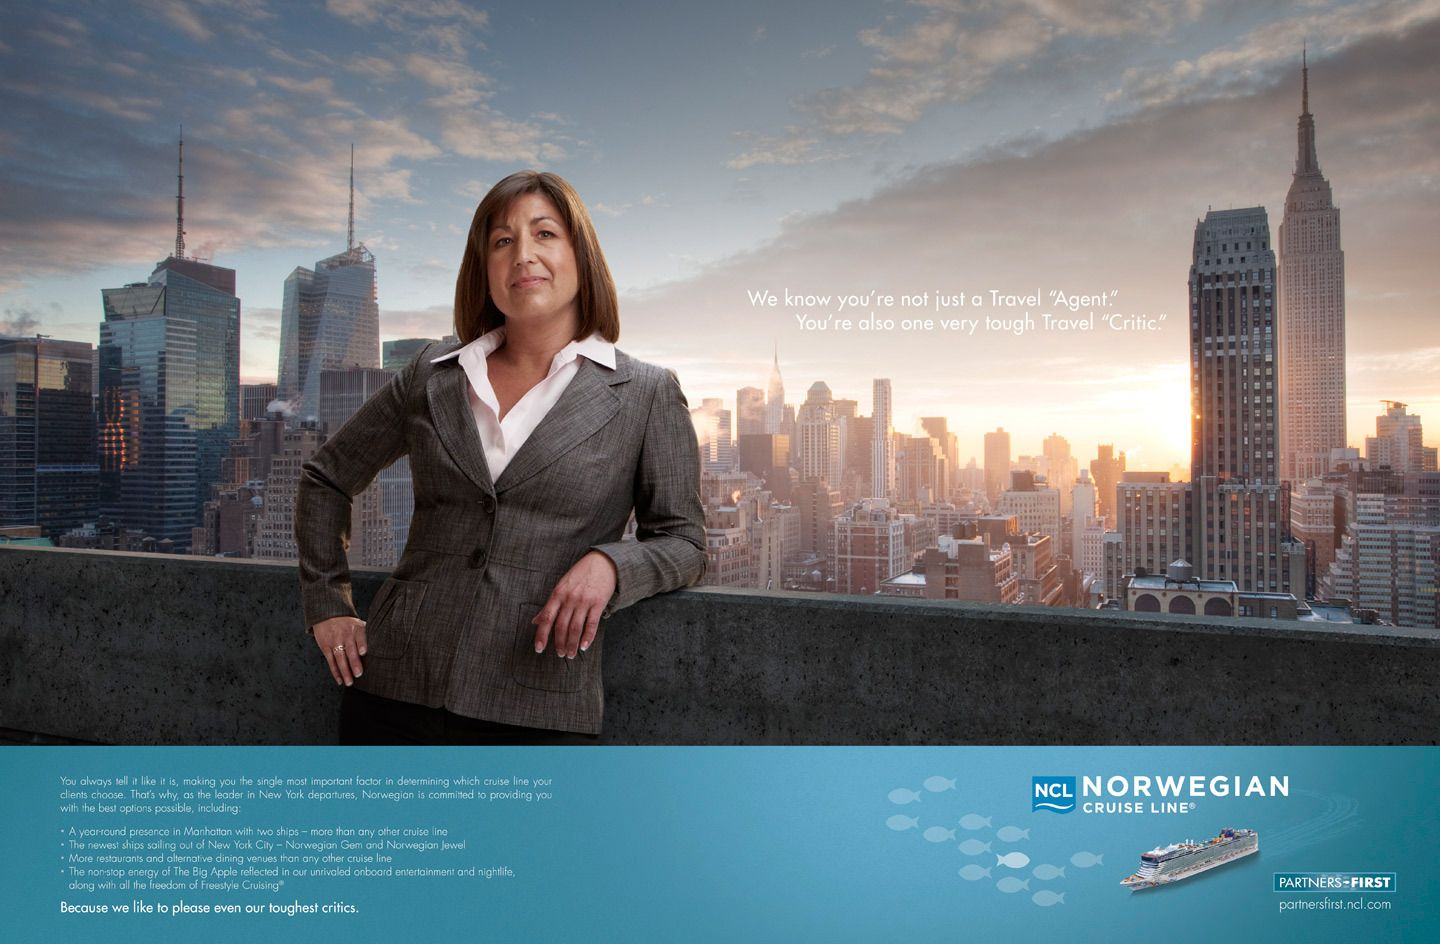 Client > Norwegian Cruise Line / Agency > RR Partners